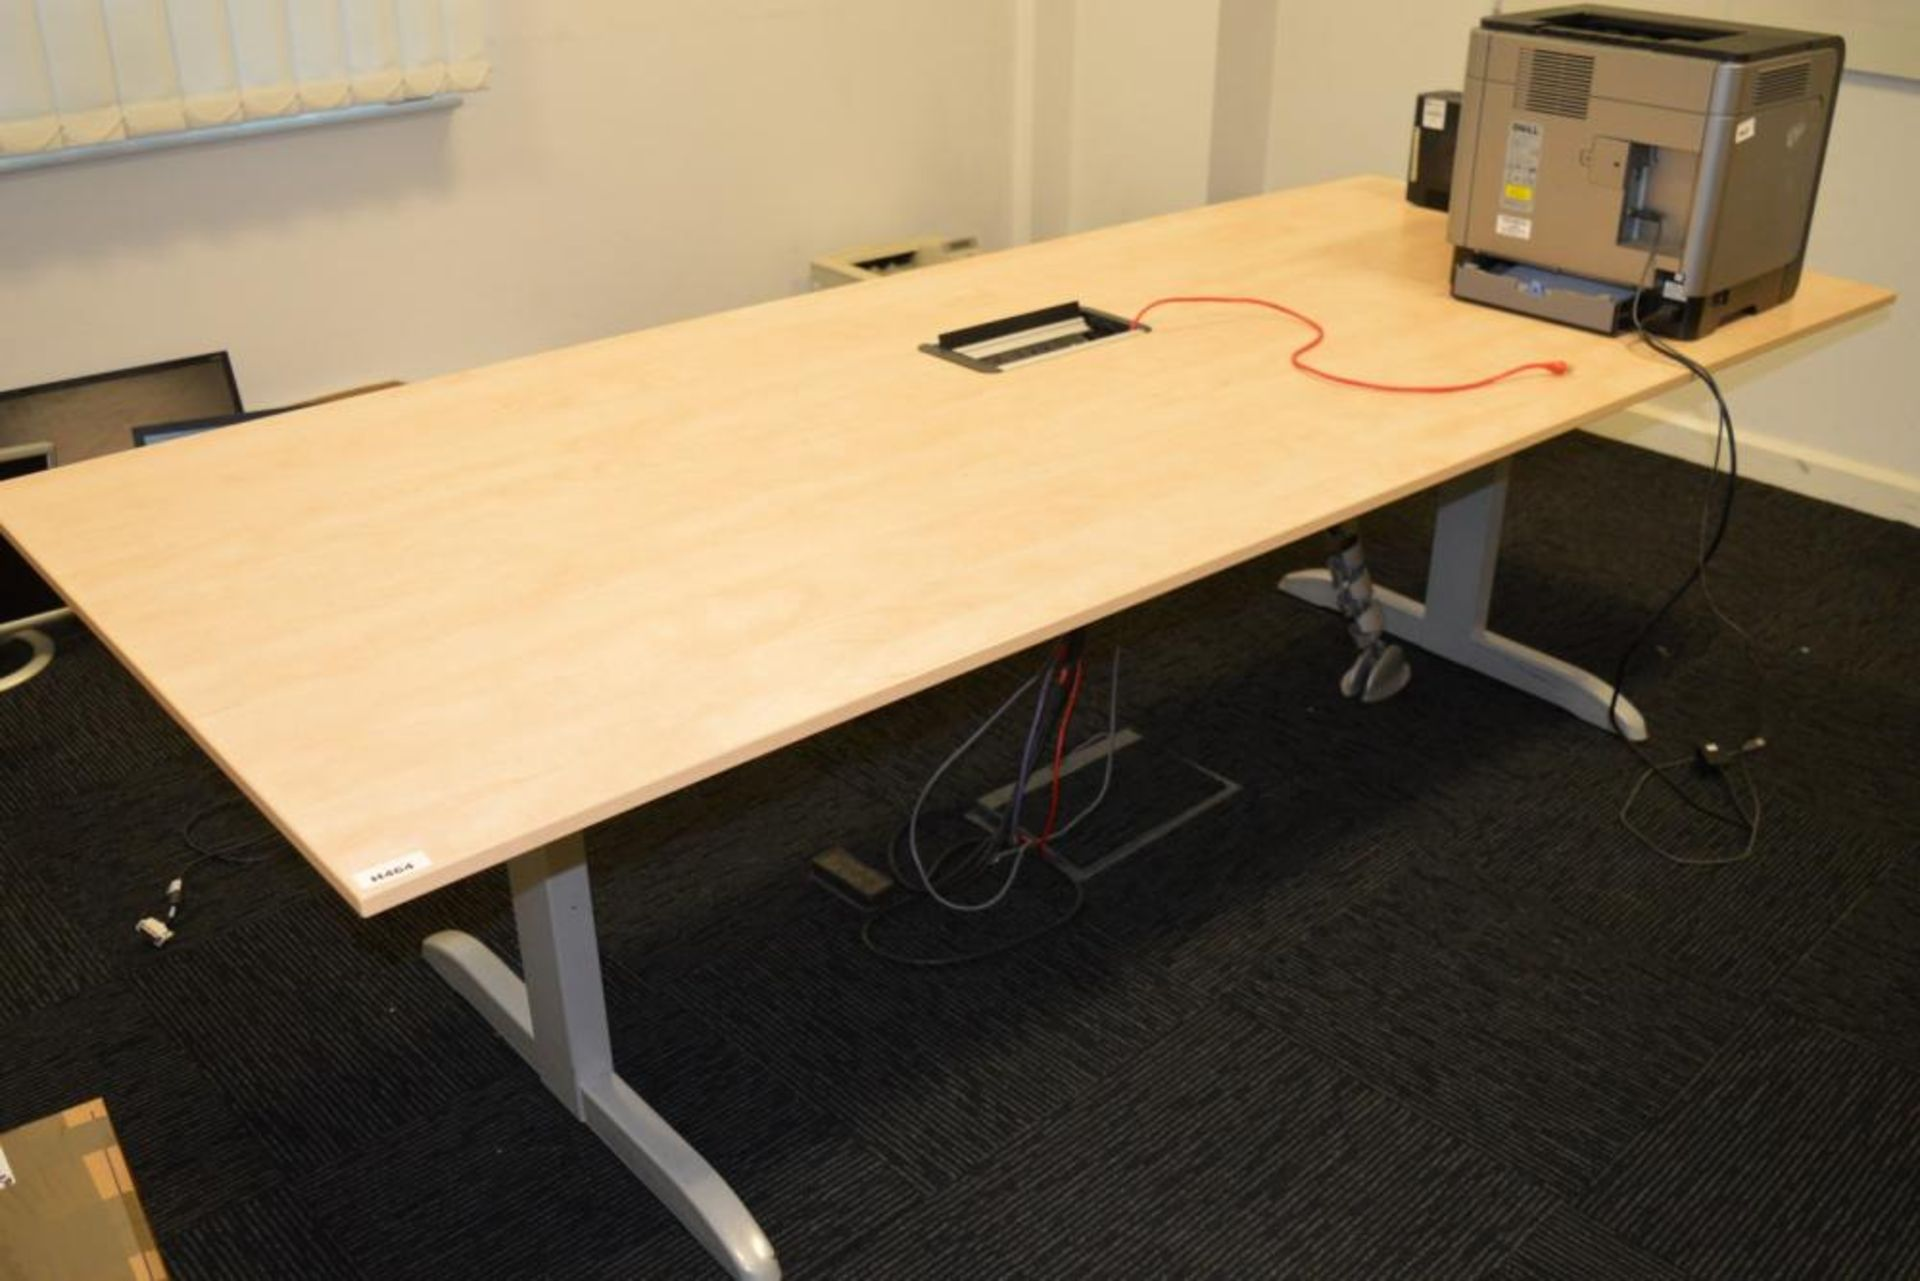 Lot 3532 - 1 X BOARDROOM MEETING TABLE WITH BIRCH FINISH AND CENTRAL CONNECTIVITY SOCKETS -H73 X W240 X D100CM